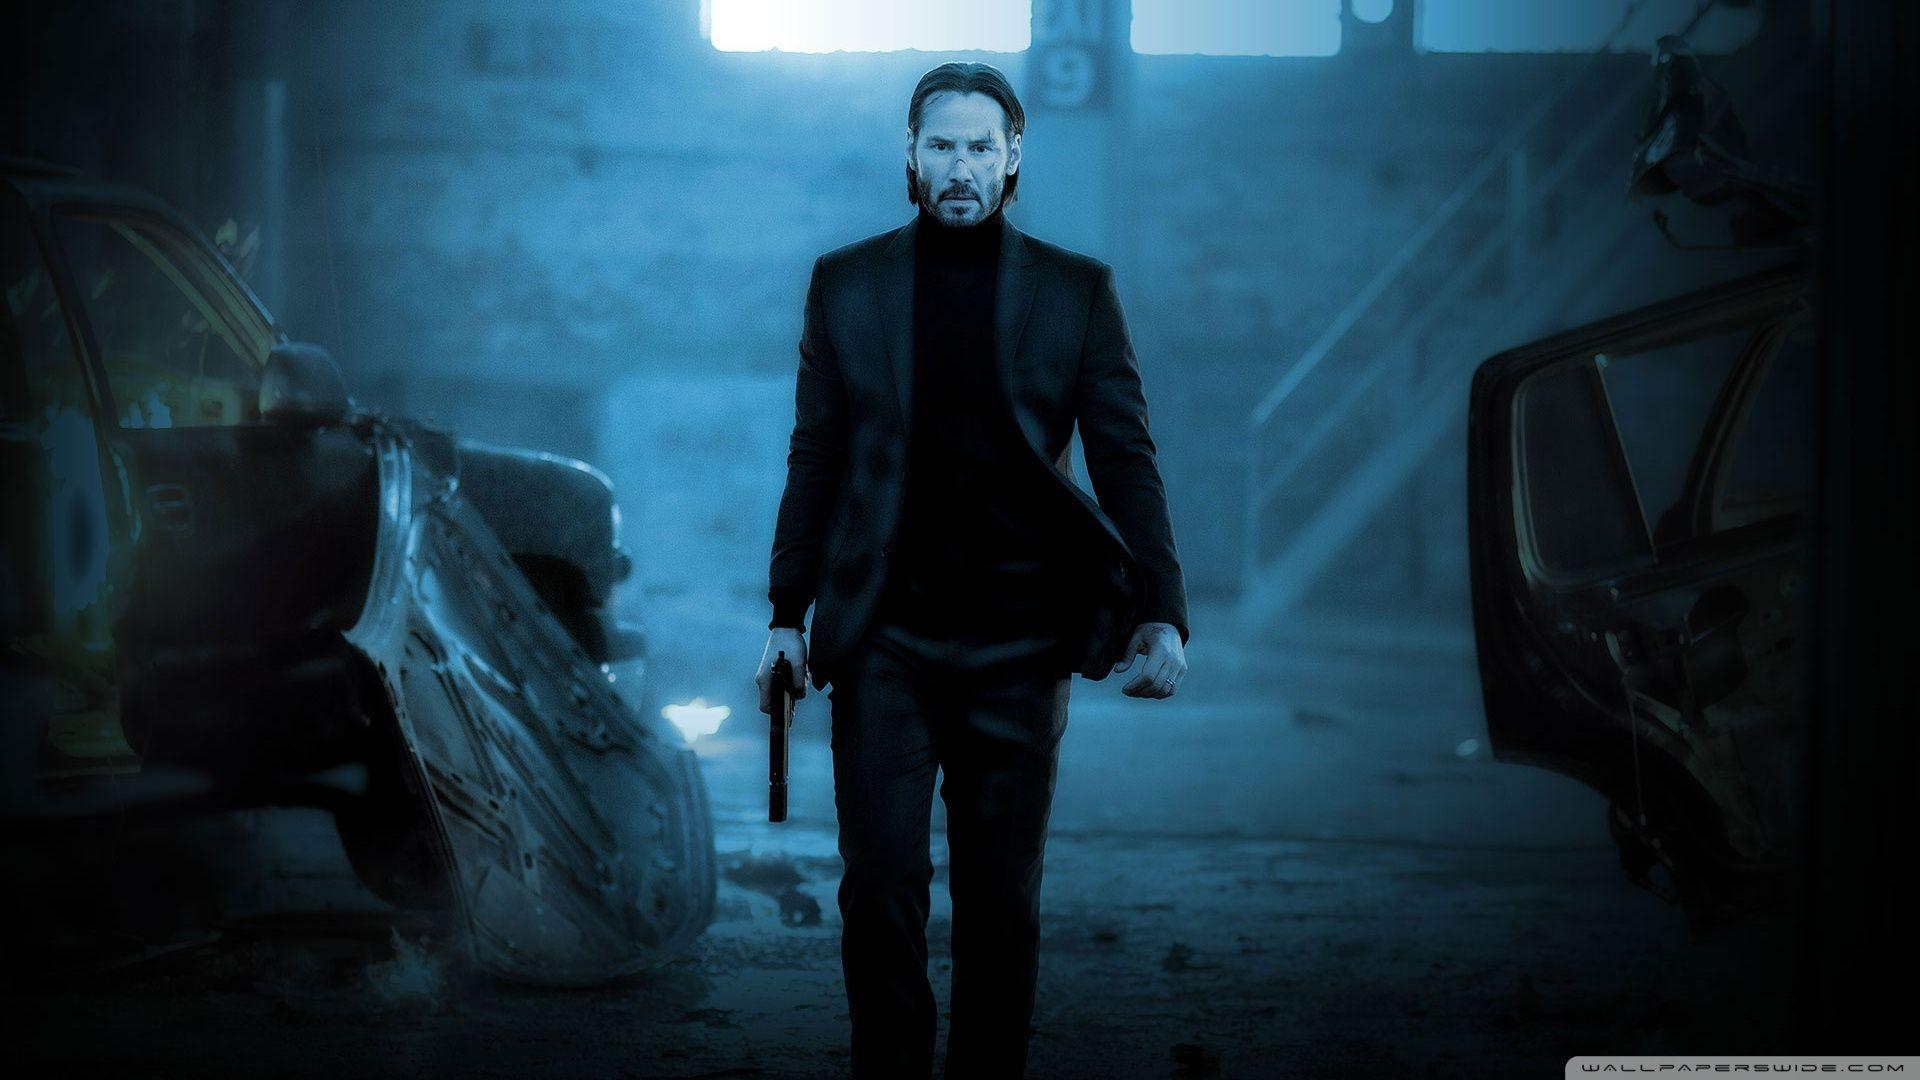 john wick 2 free download 720p